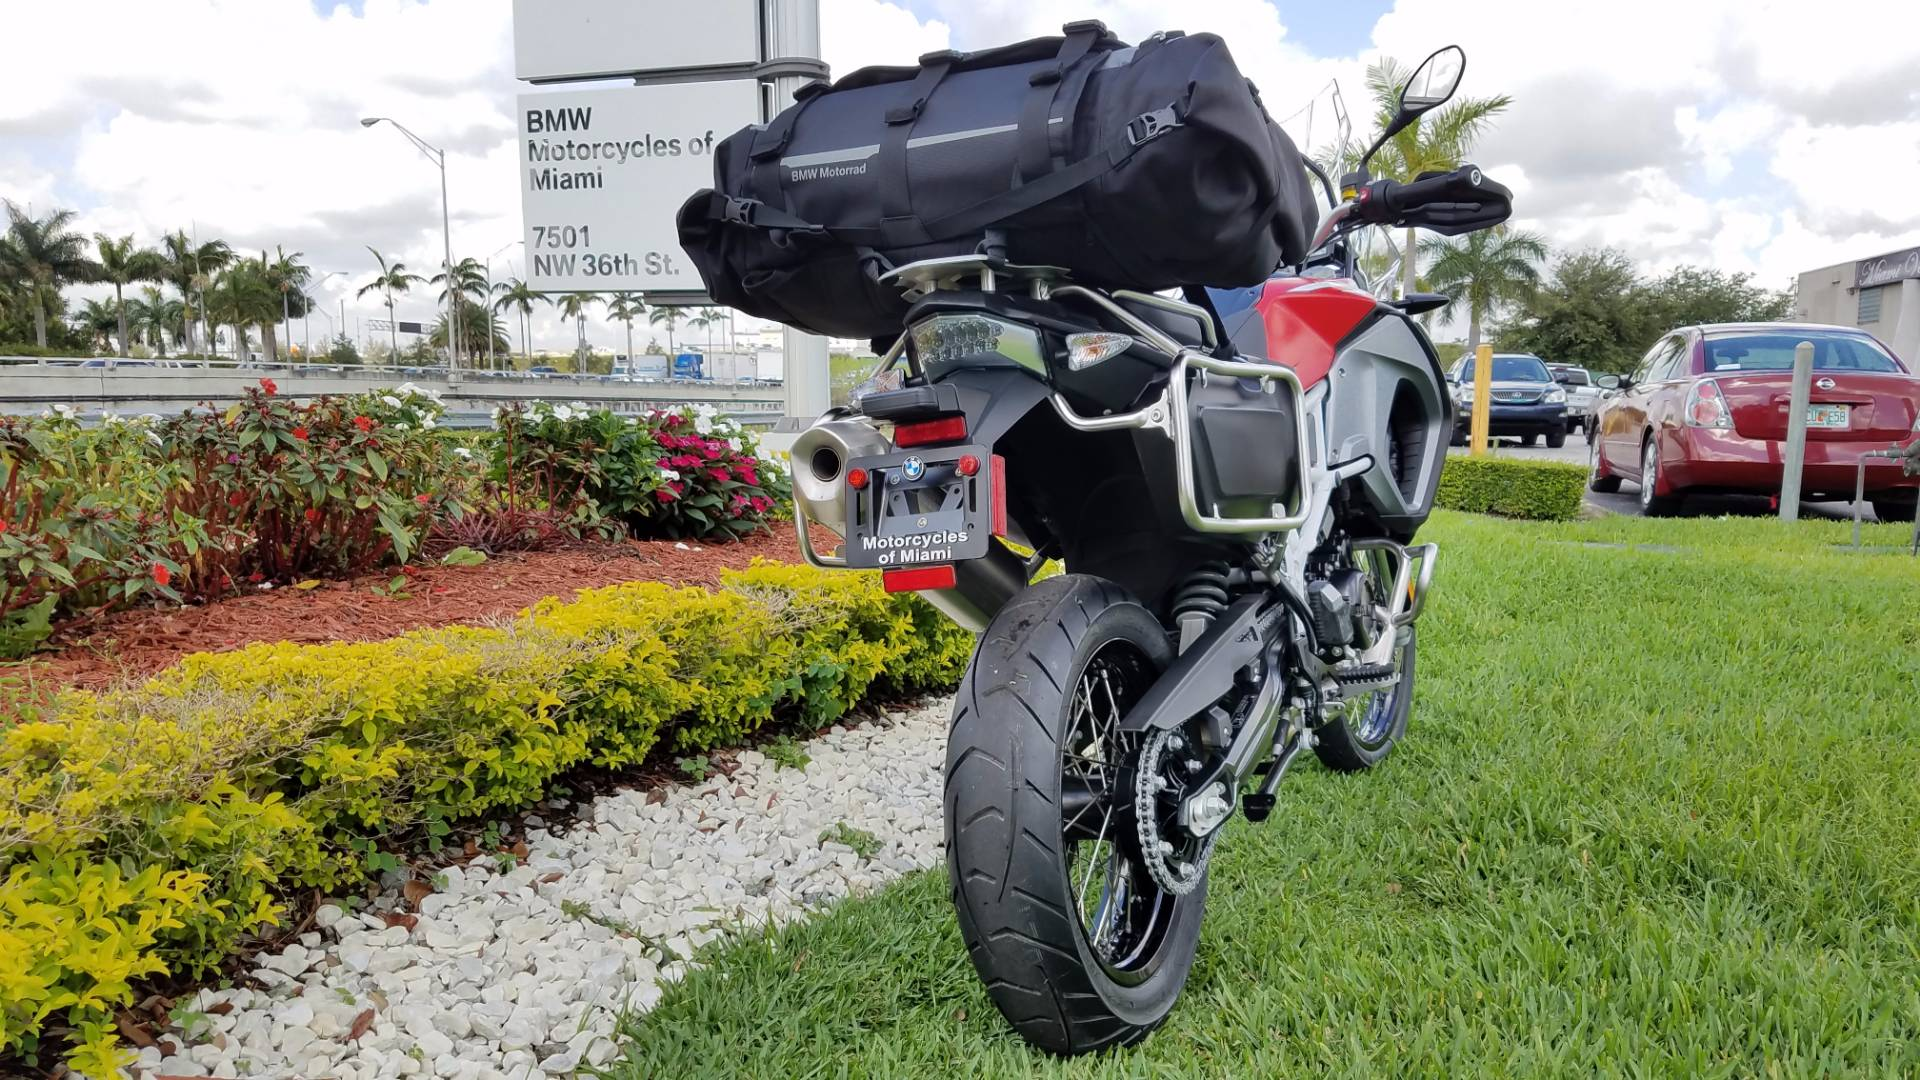 New 2017 BMW F 800 GSA For Sale free Atacama Duffel Top Bag, BMW F 800 GS Adventure For Sale, BMW Motorcycle F 800 GSA, new BMW f 800 Adventure, New BMW Motorcycle